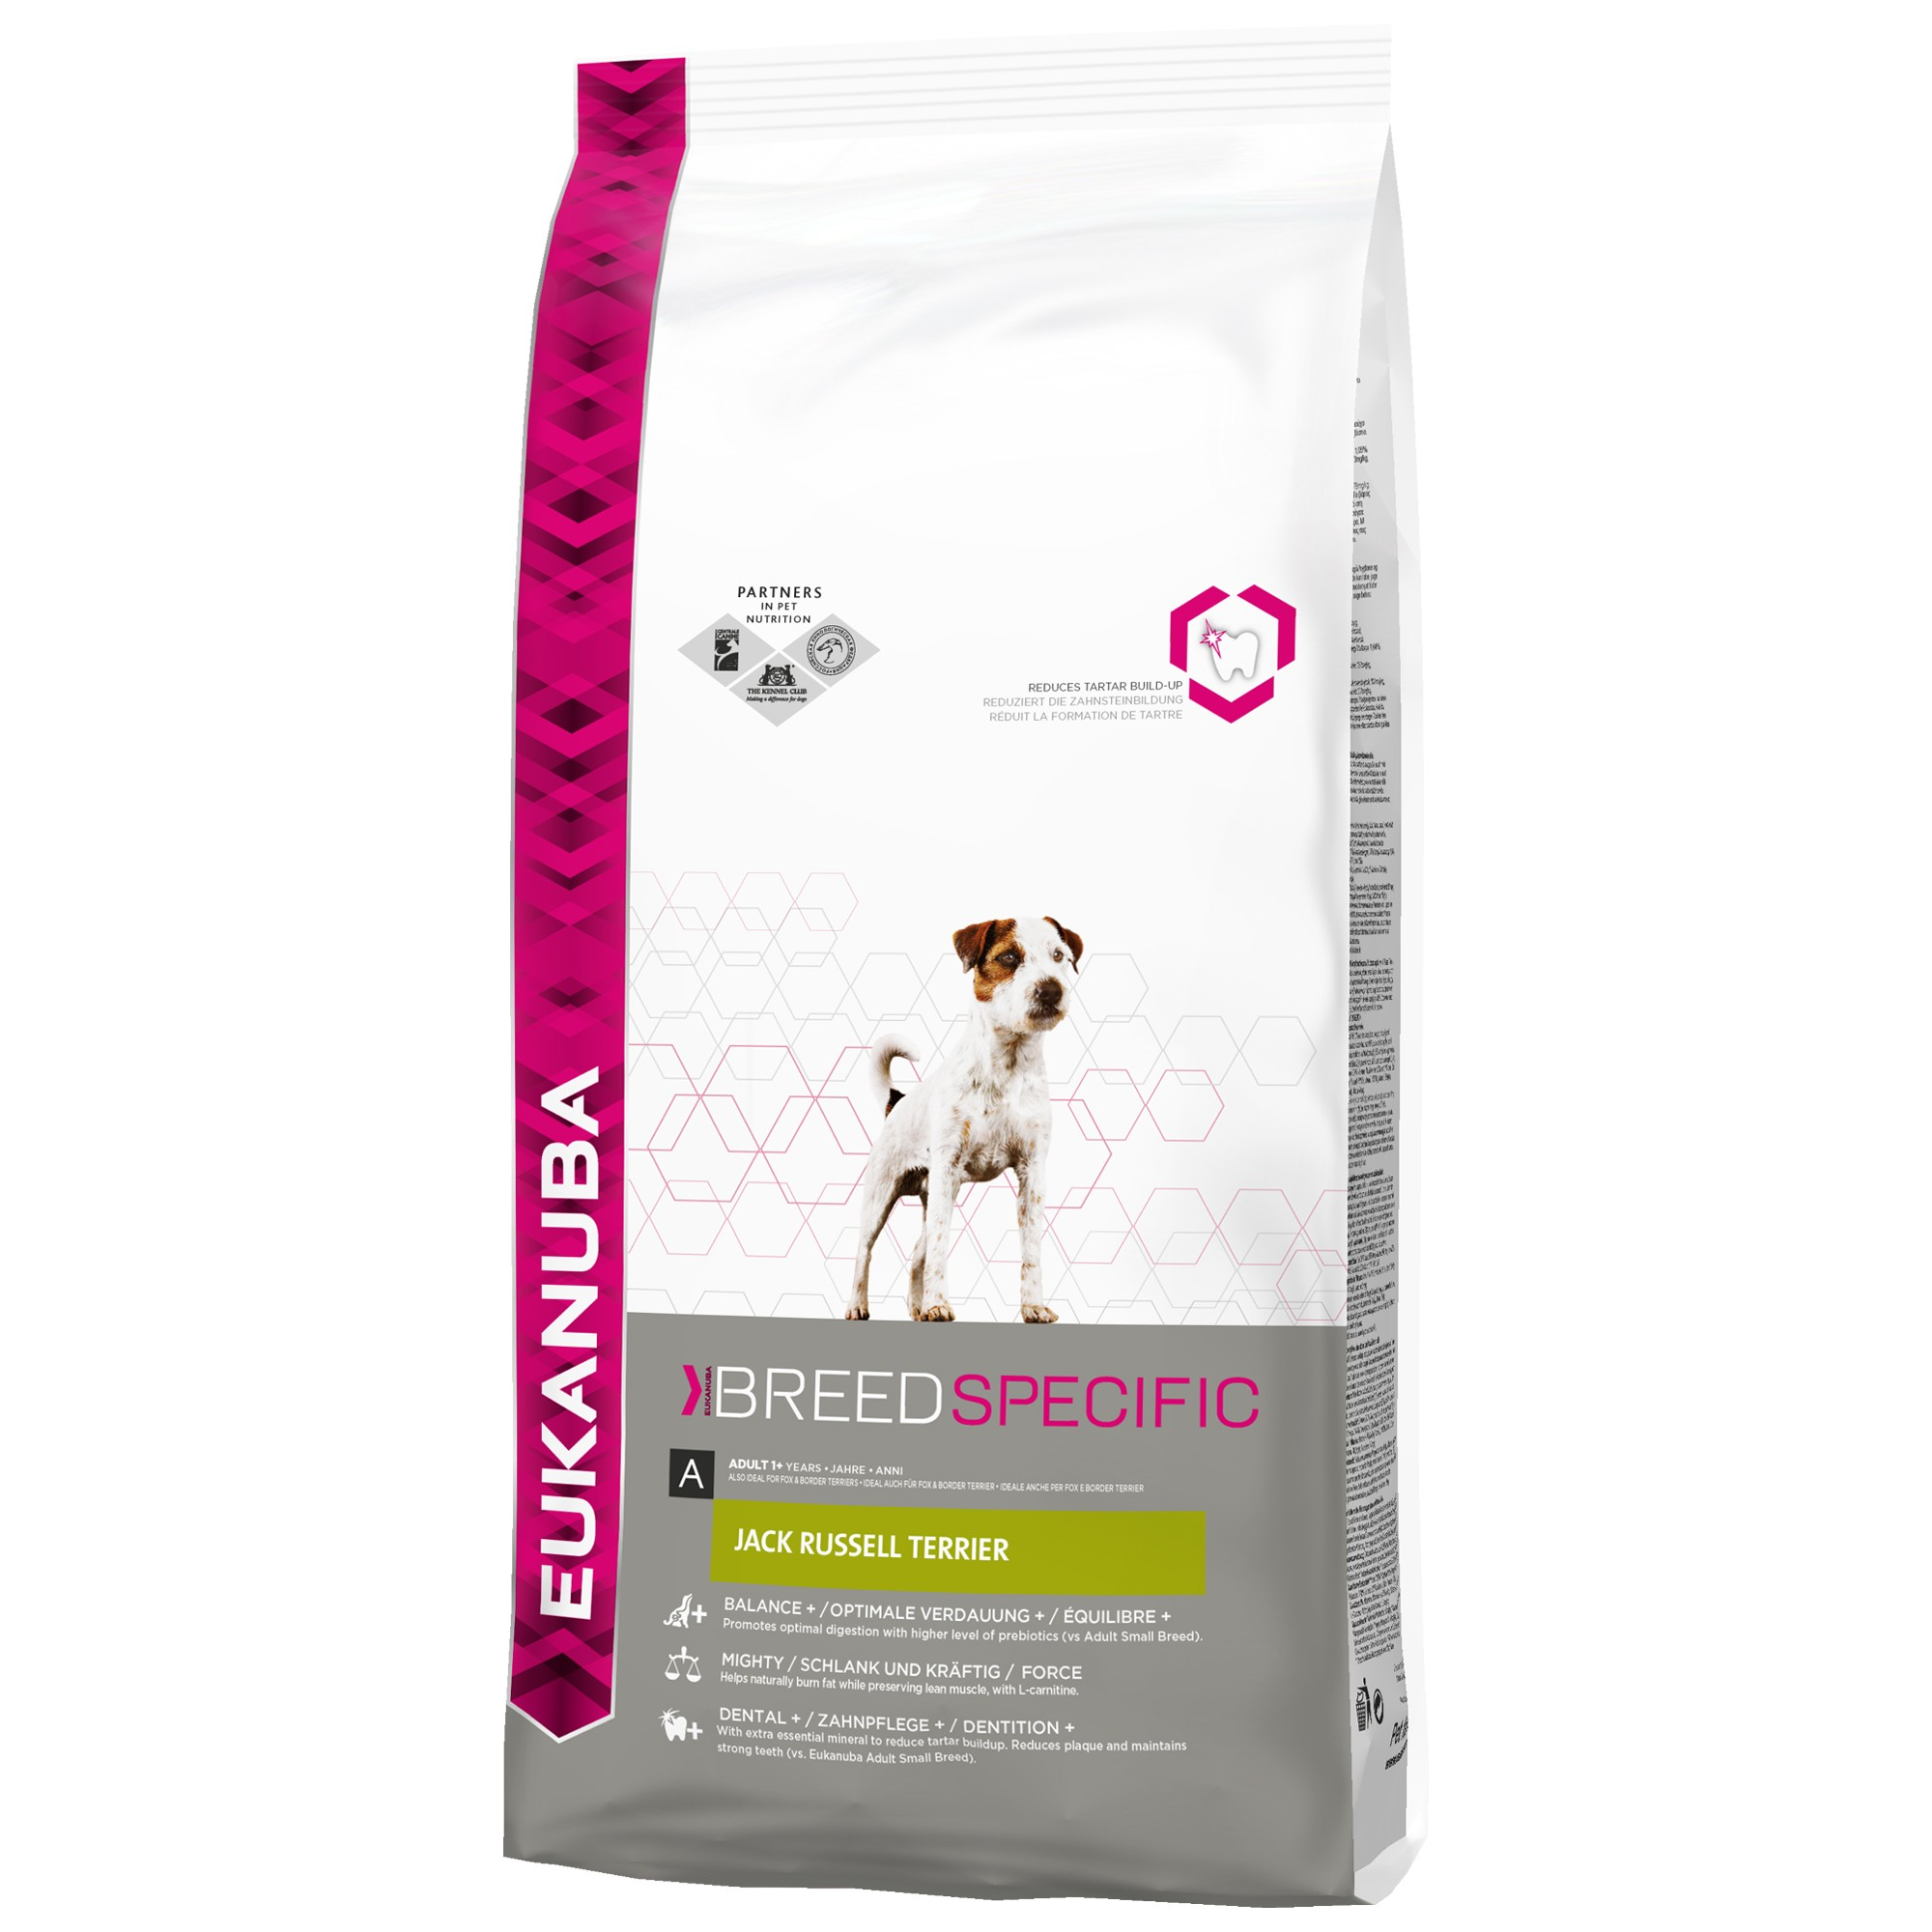 Eukanuba Breed Specific Jack Russell Terrier pour chien